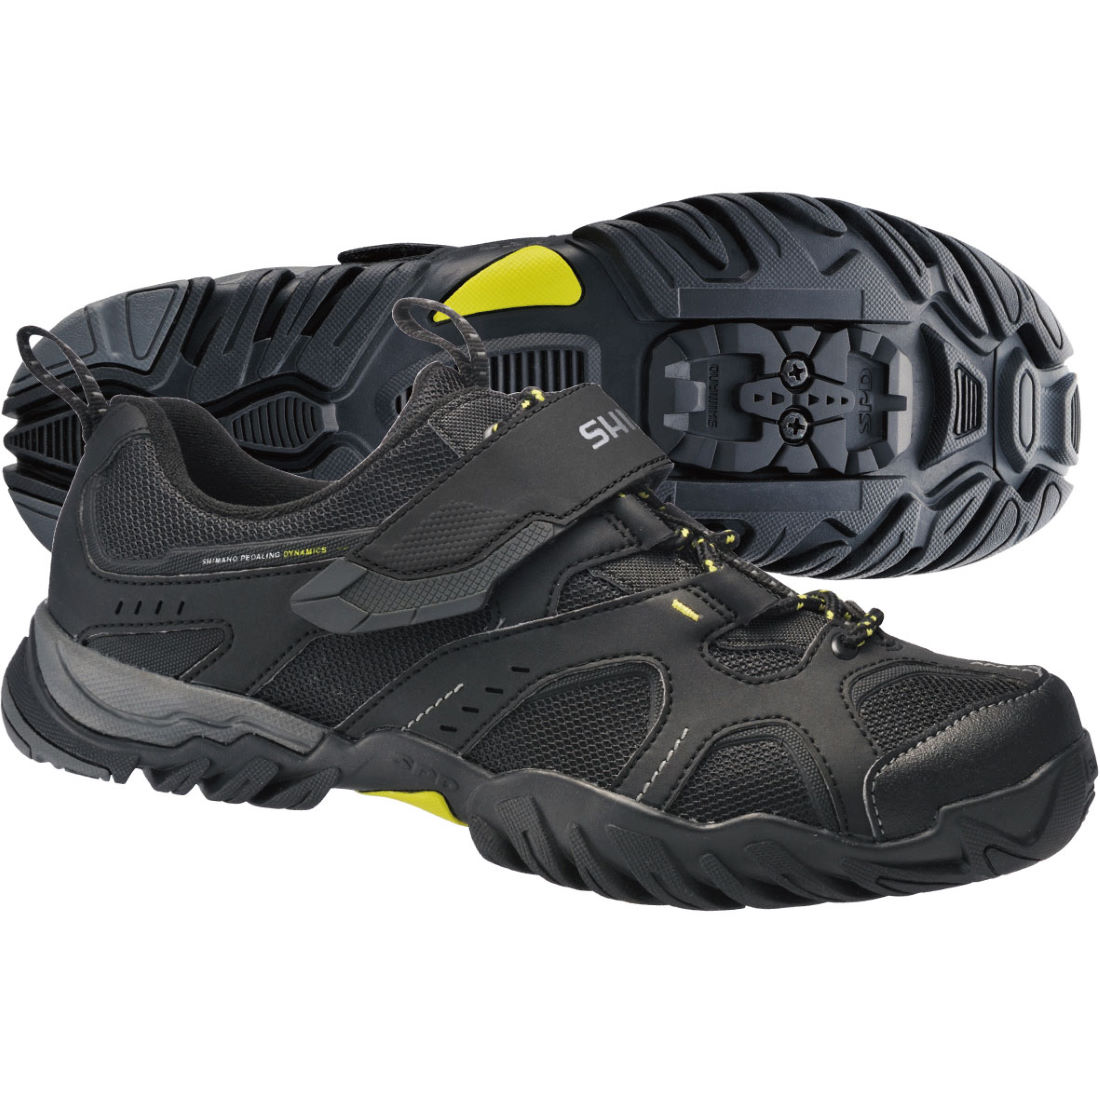 Women S Cycling Shoes With Cleats